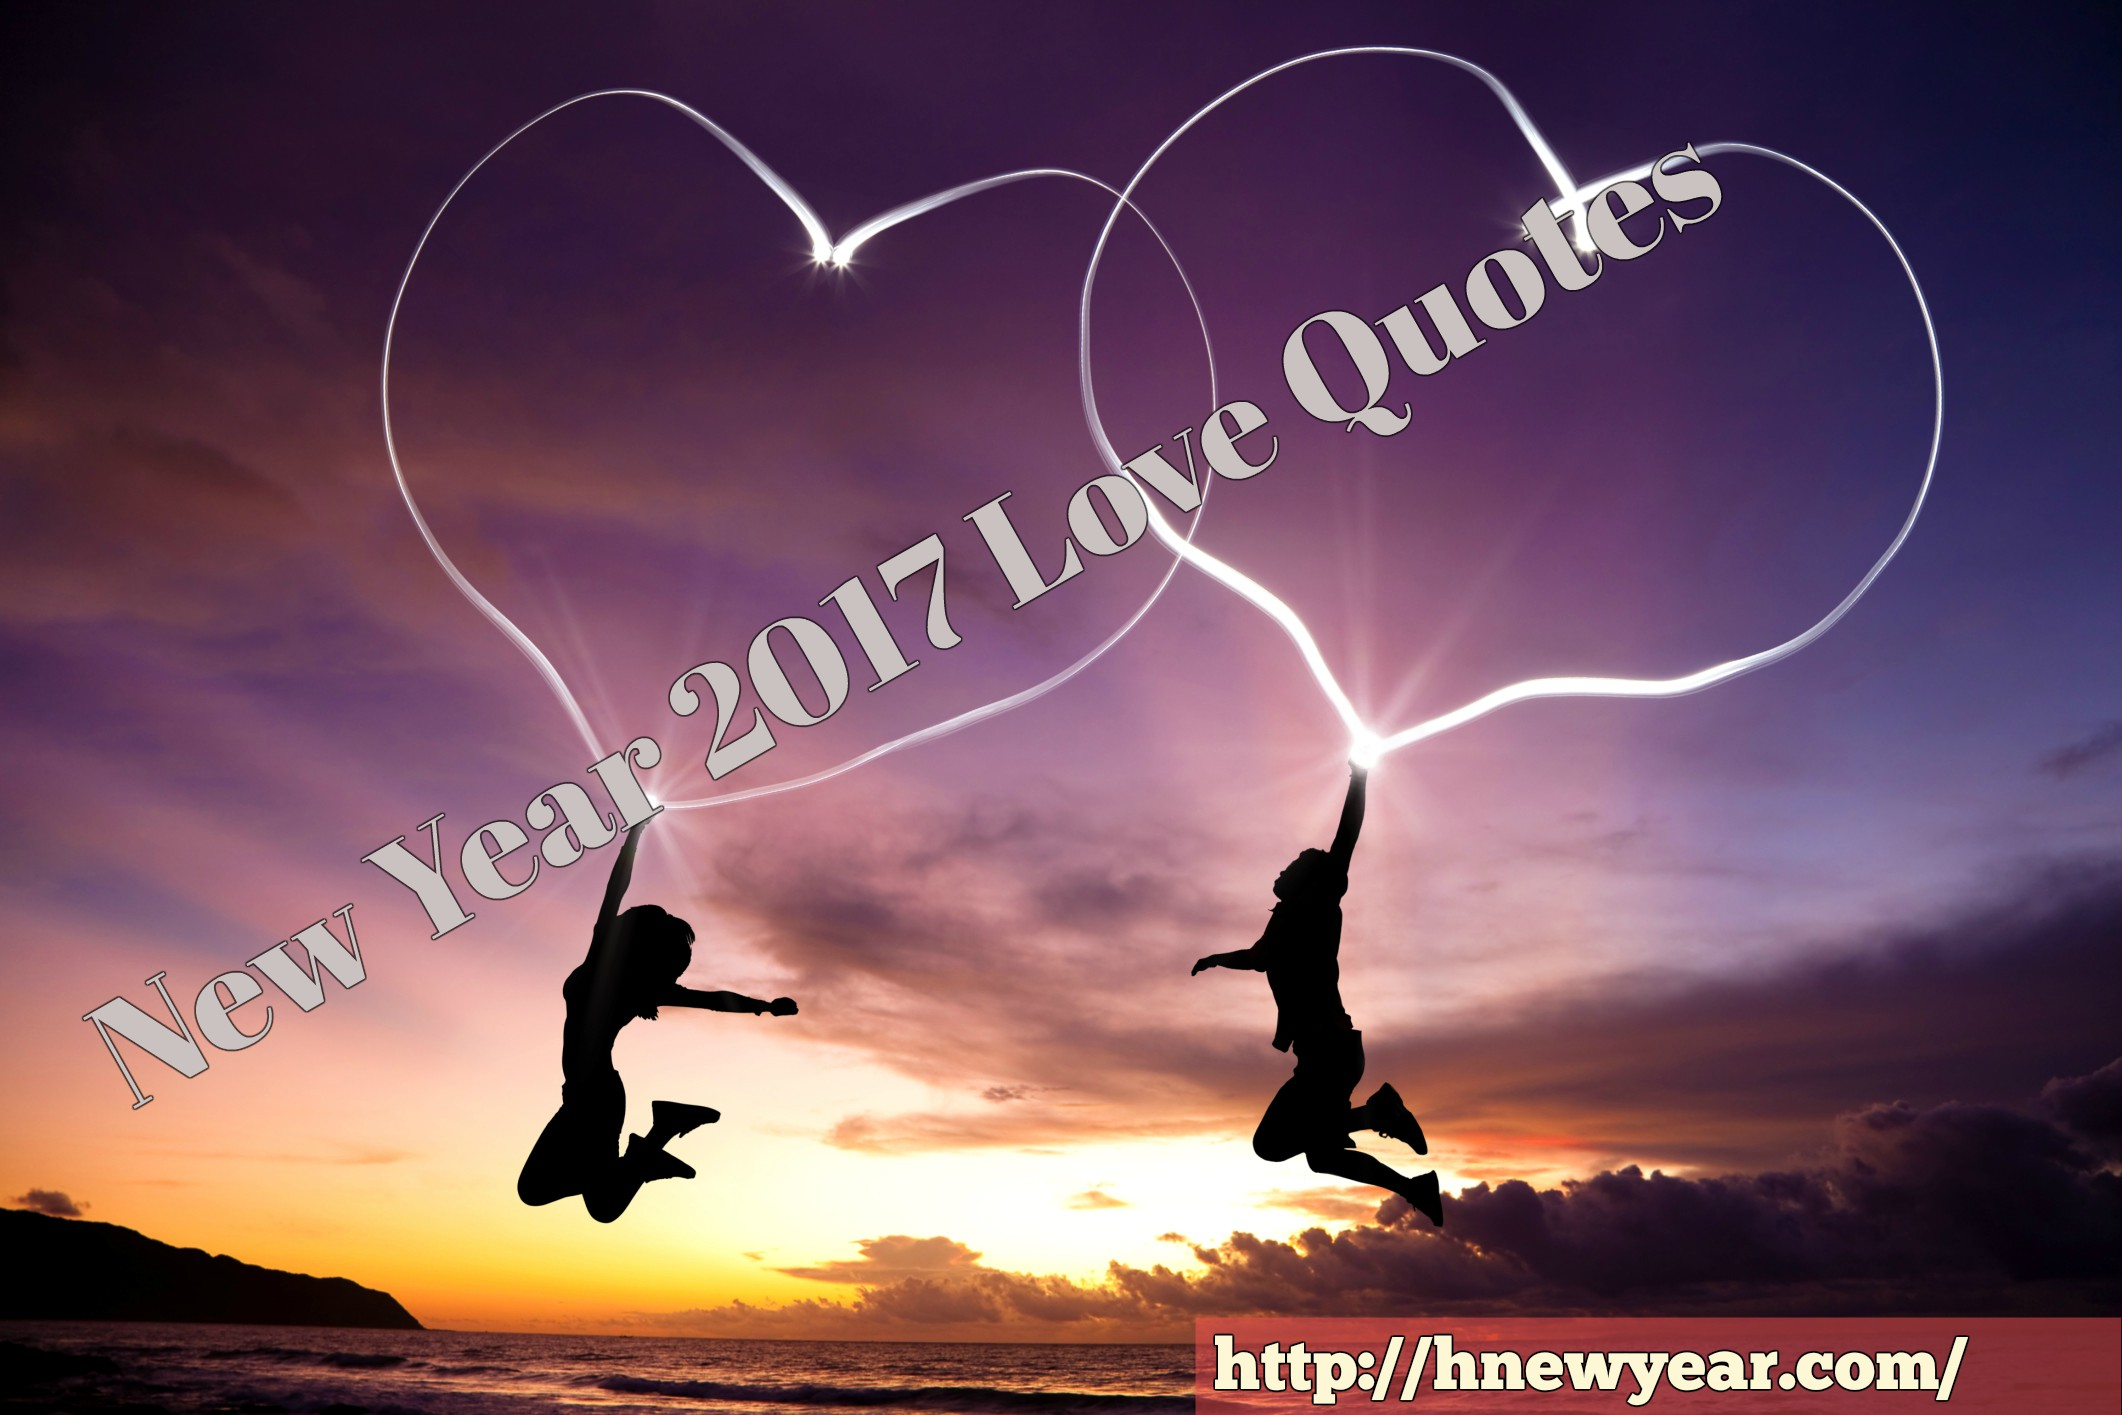 Upcoming New Year 2019 Love Quotes For Lovers Couple 2019